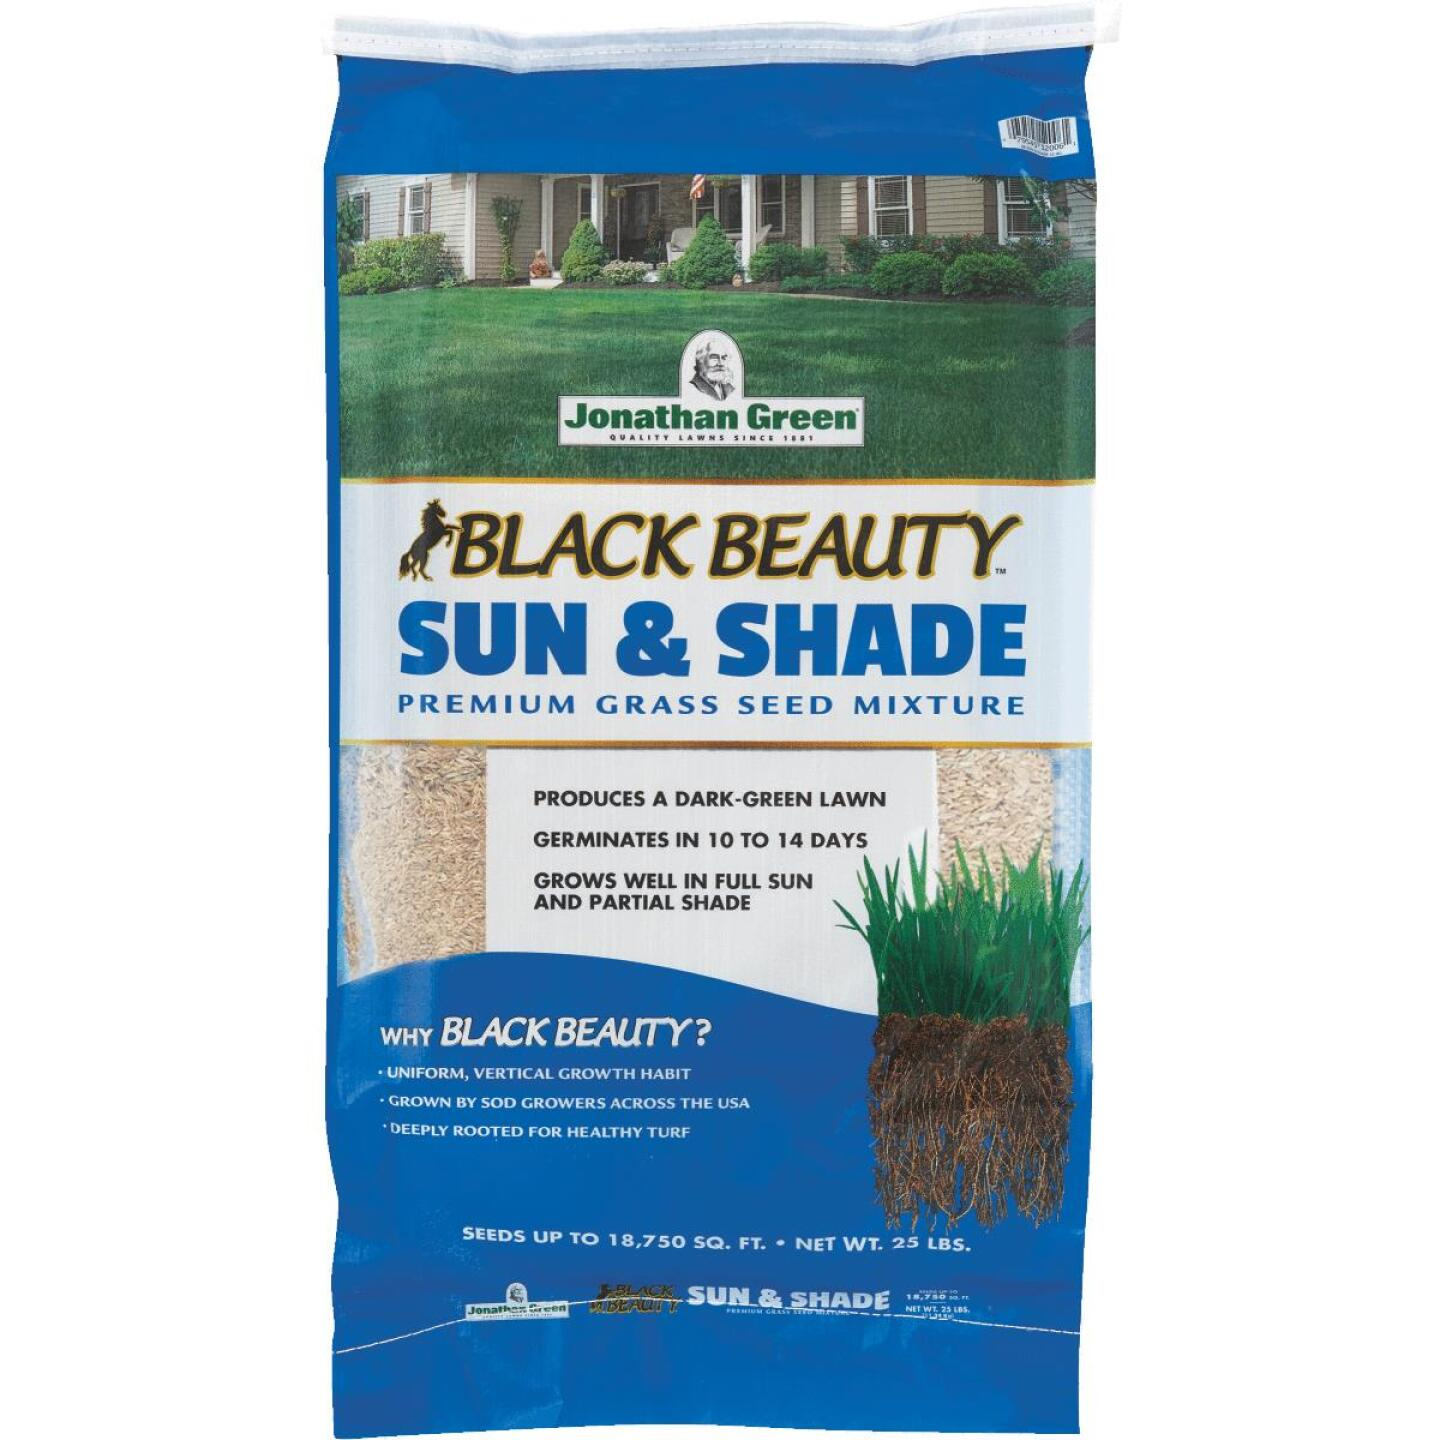 Jonathan Green Black Beauty 25 Lb. 9375 Sq. Ft. Coverage Sun & Shade Grass Seed Image 1